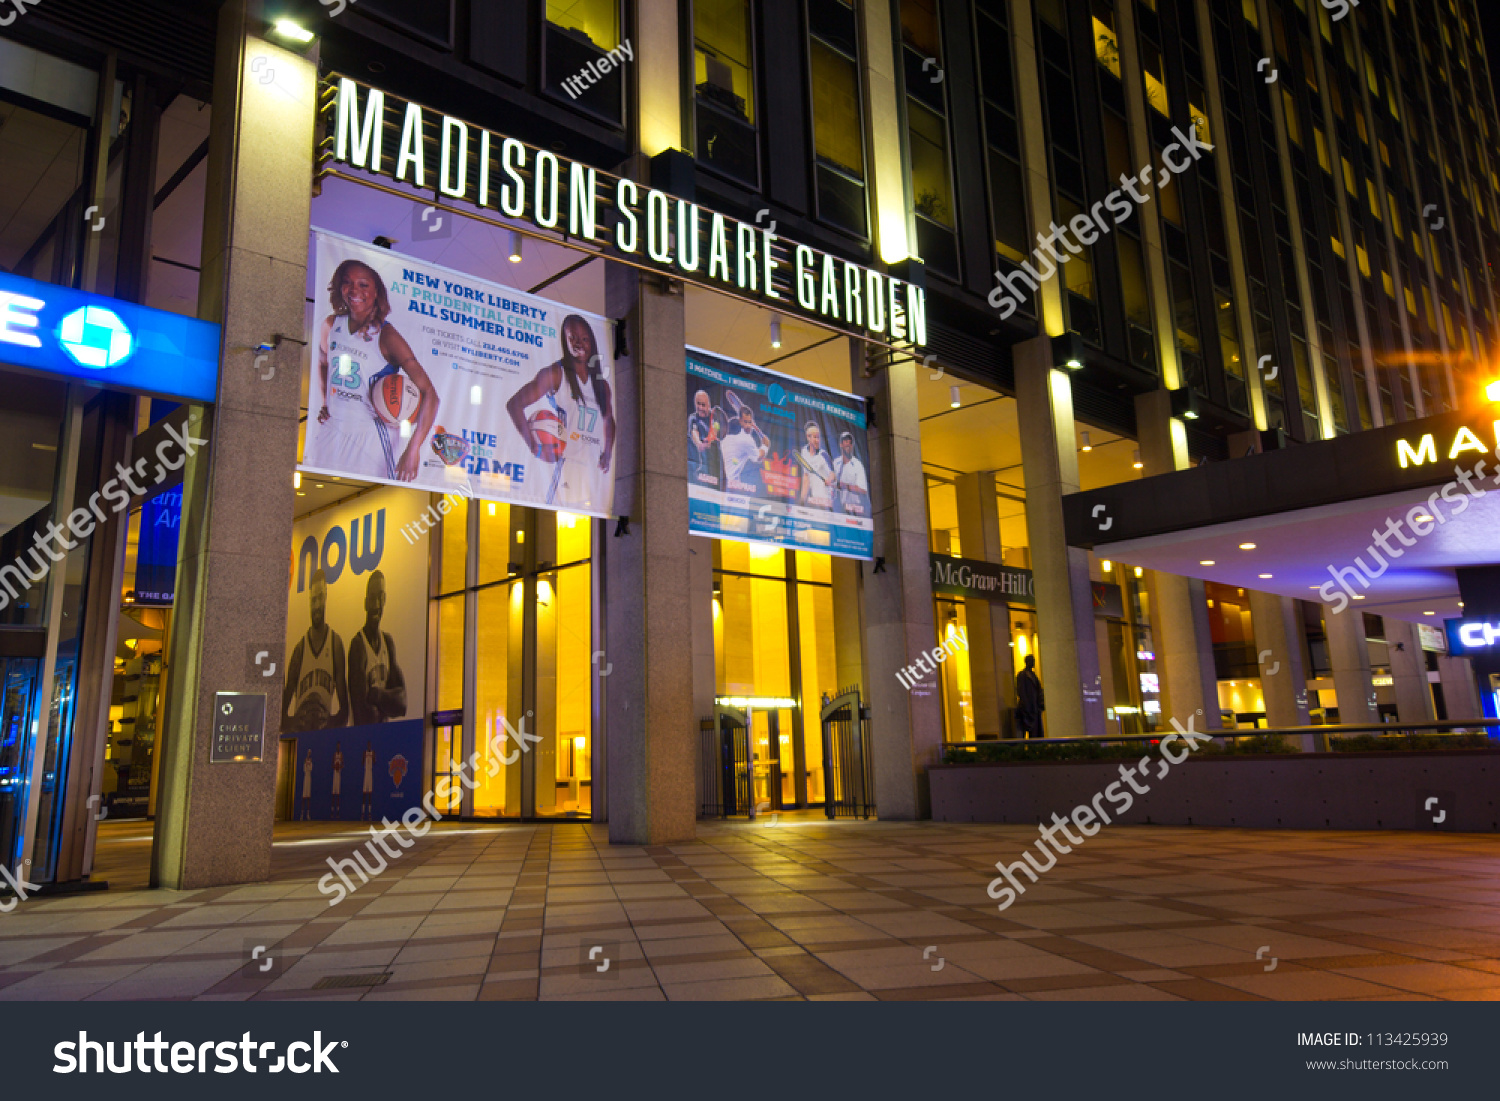 Gorgeous New York City Sept  Entrance Stock Photo   Shutterstock With Magnificent New York City  Sept  Entrance To Madison Square Garden In New York City With Appealing Garden Statues Sculptures Also Noro Silk Garden Lite In Addition Eggleston Hall Gardens And Buy Soil For Garden As Well As English Garden Bond Additionally Spice Garden Ramsbottom From Shutterstockcom With   Magnificent New York City Sept  Entrance Stock Photo   Shutterstock With Appealing New York City  Sept  Entrance To Madison Square Garden In New York City And Gorgeous Garden Statues Sculptures Also Noro Silk Garden Lite In Addition Eggleston Hall Gardens From Shutterstockcom